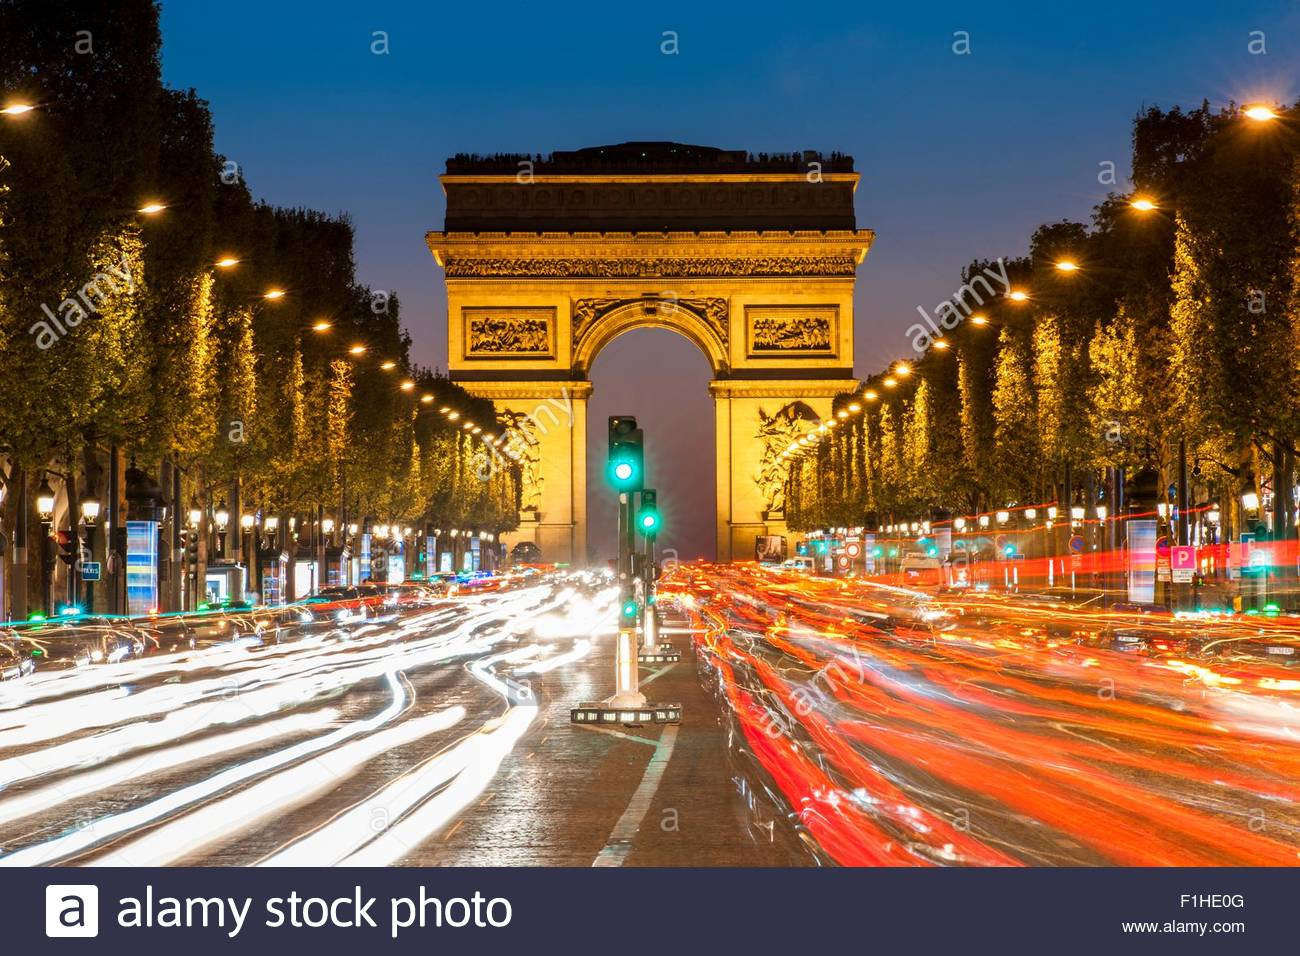 View of the traffic in front of Arc de Triomphe at night, Paris, France - Stock Image